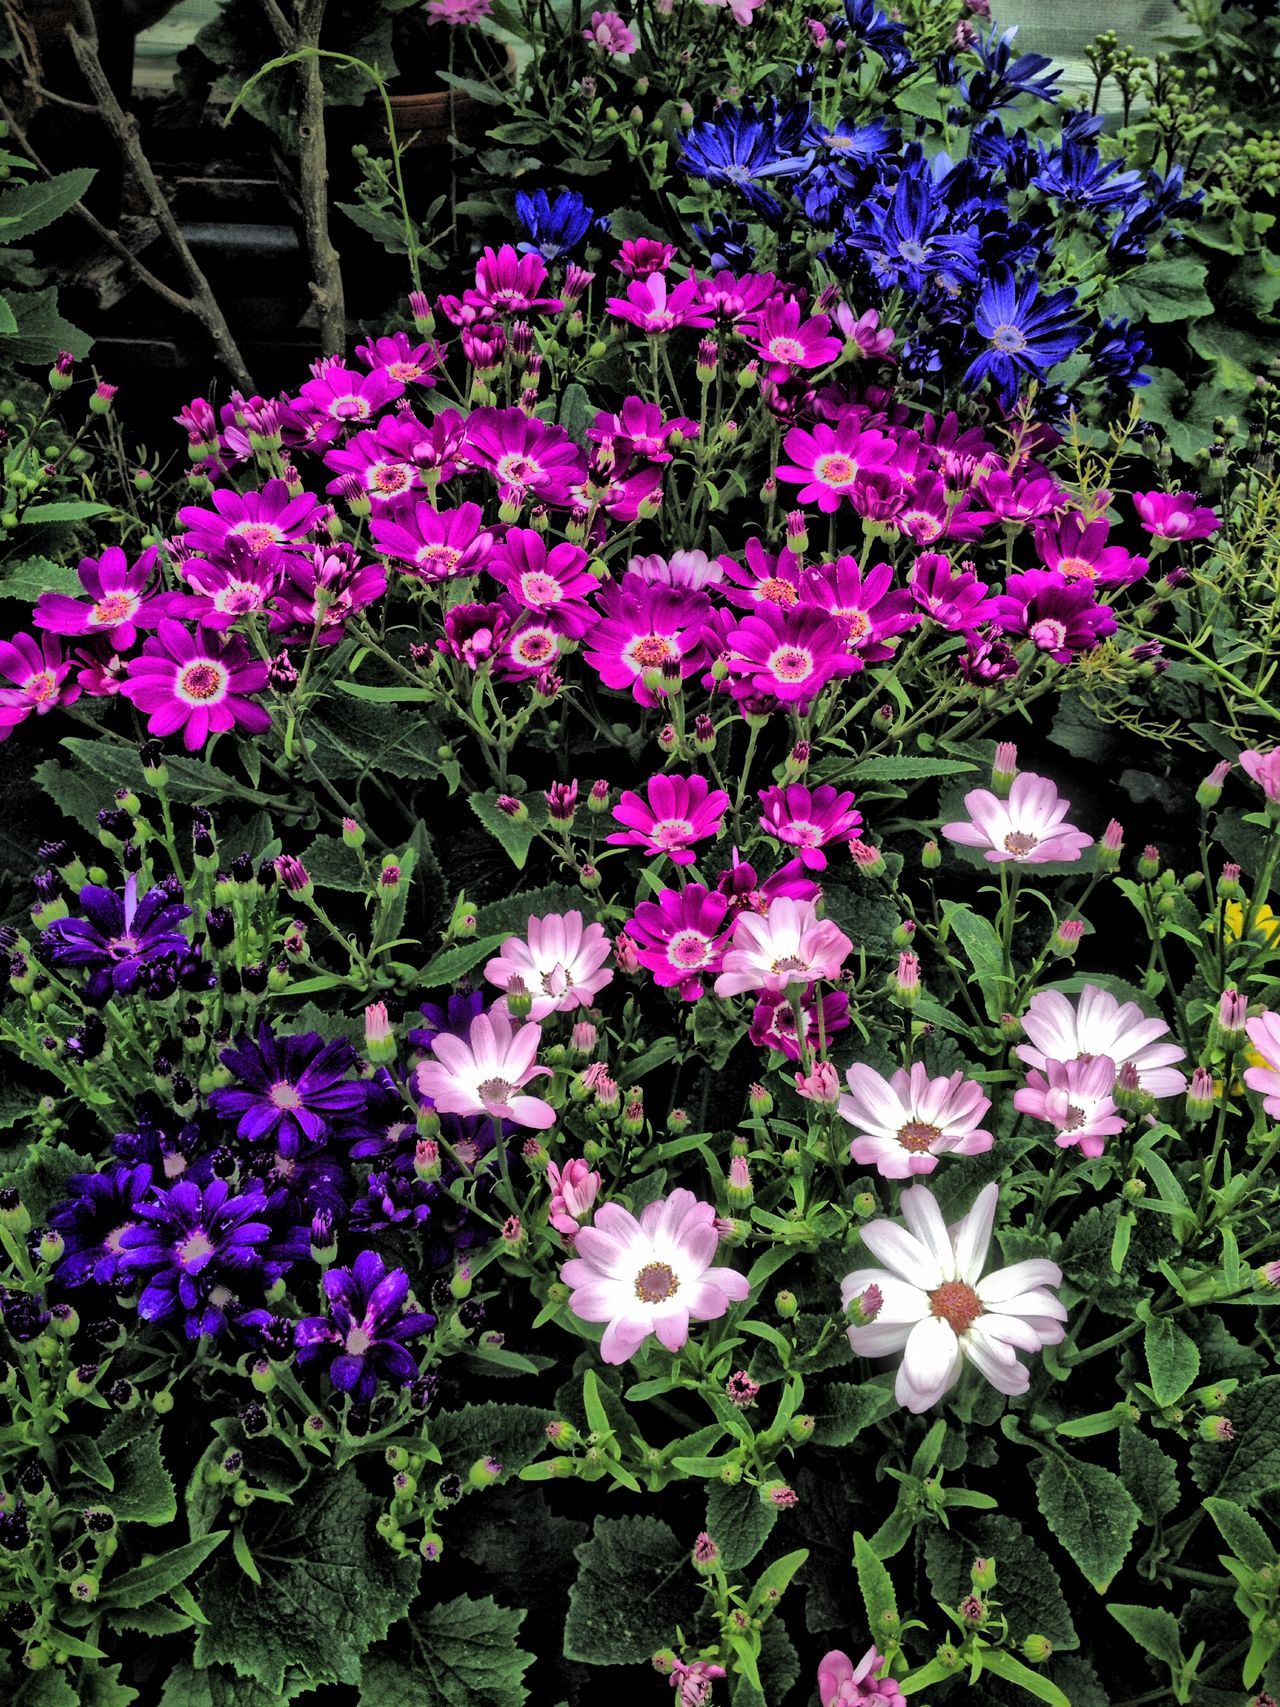 Cineraria flowers Beauty In Nature Blooming Blue Botany Cineraria Close-up Flower Flower Head Flowers Freshness Growing Growth In Bloom Nature Outdoors Petal Pink Plant Purple